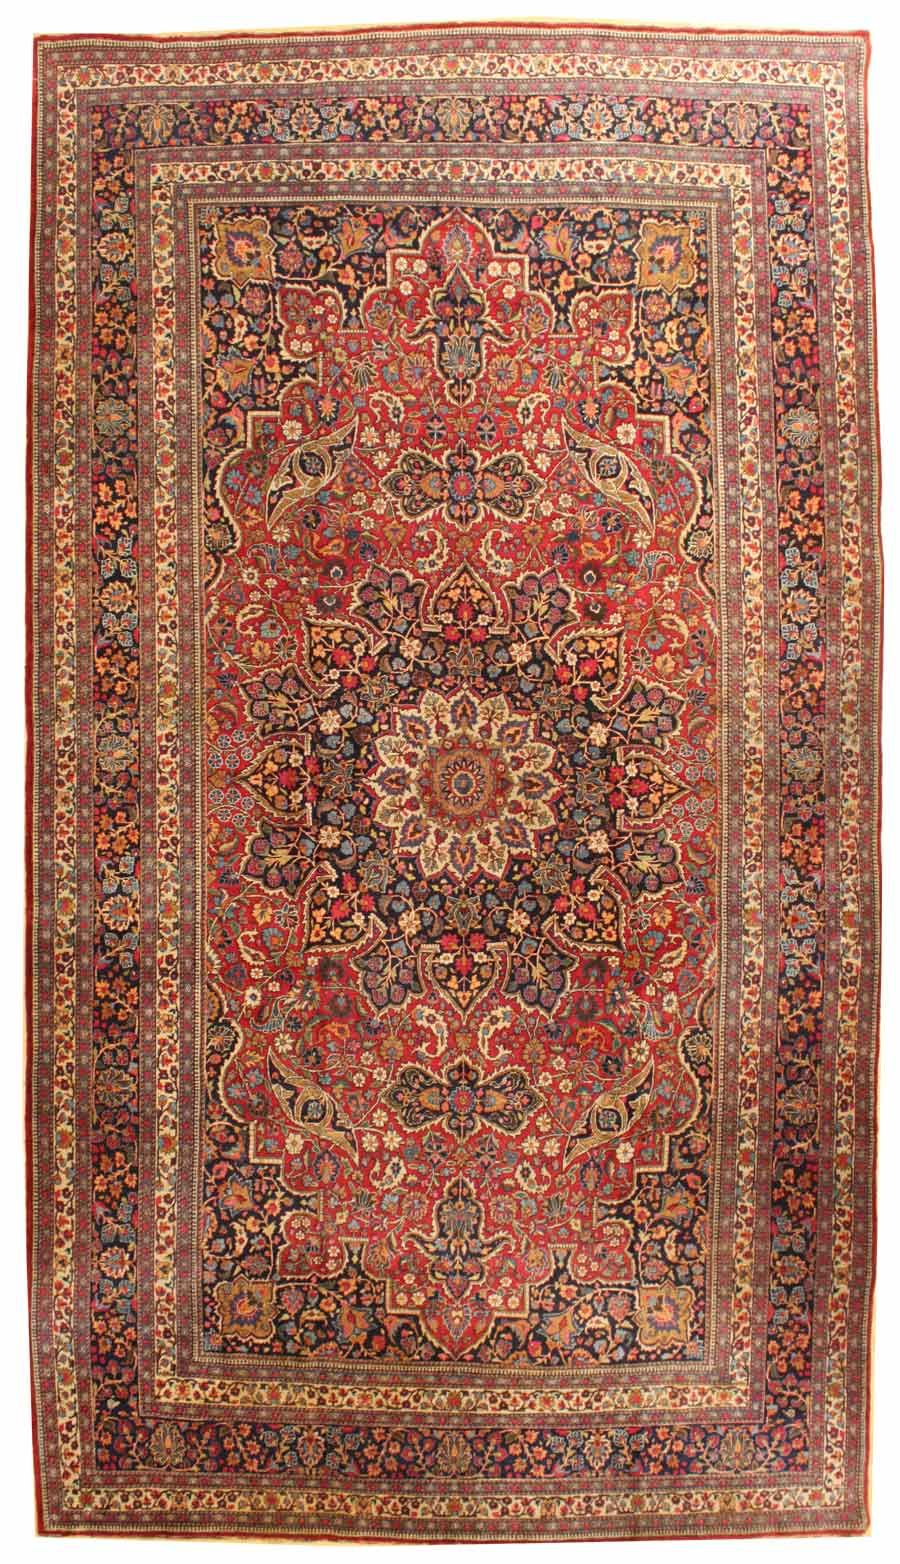 Pin By Farsi On Antiques In 2020 Rugs Antique Persian Carpet Persian Rug